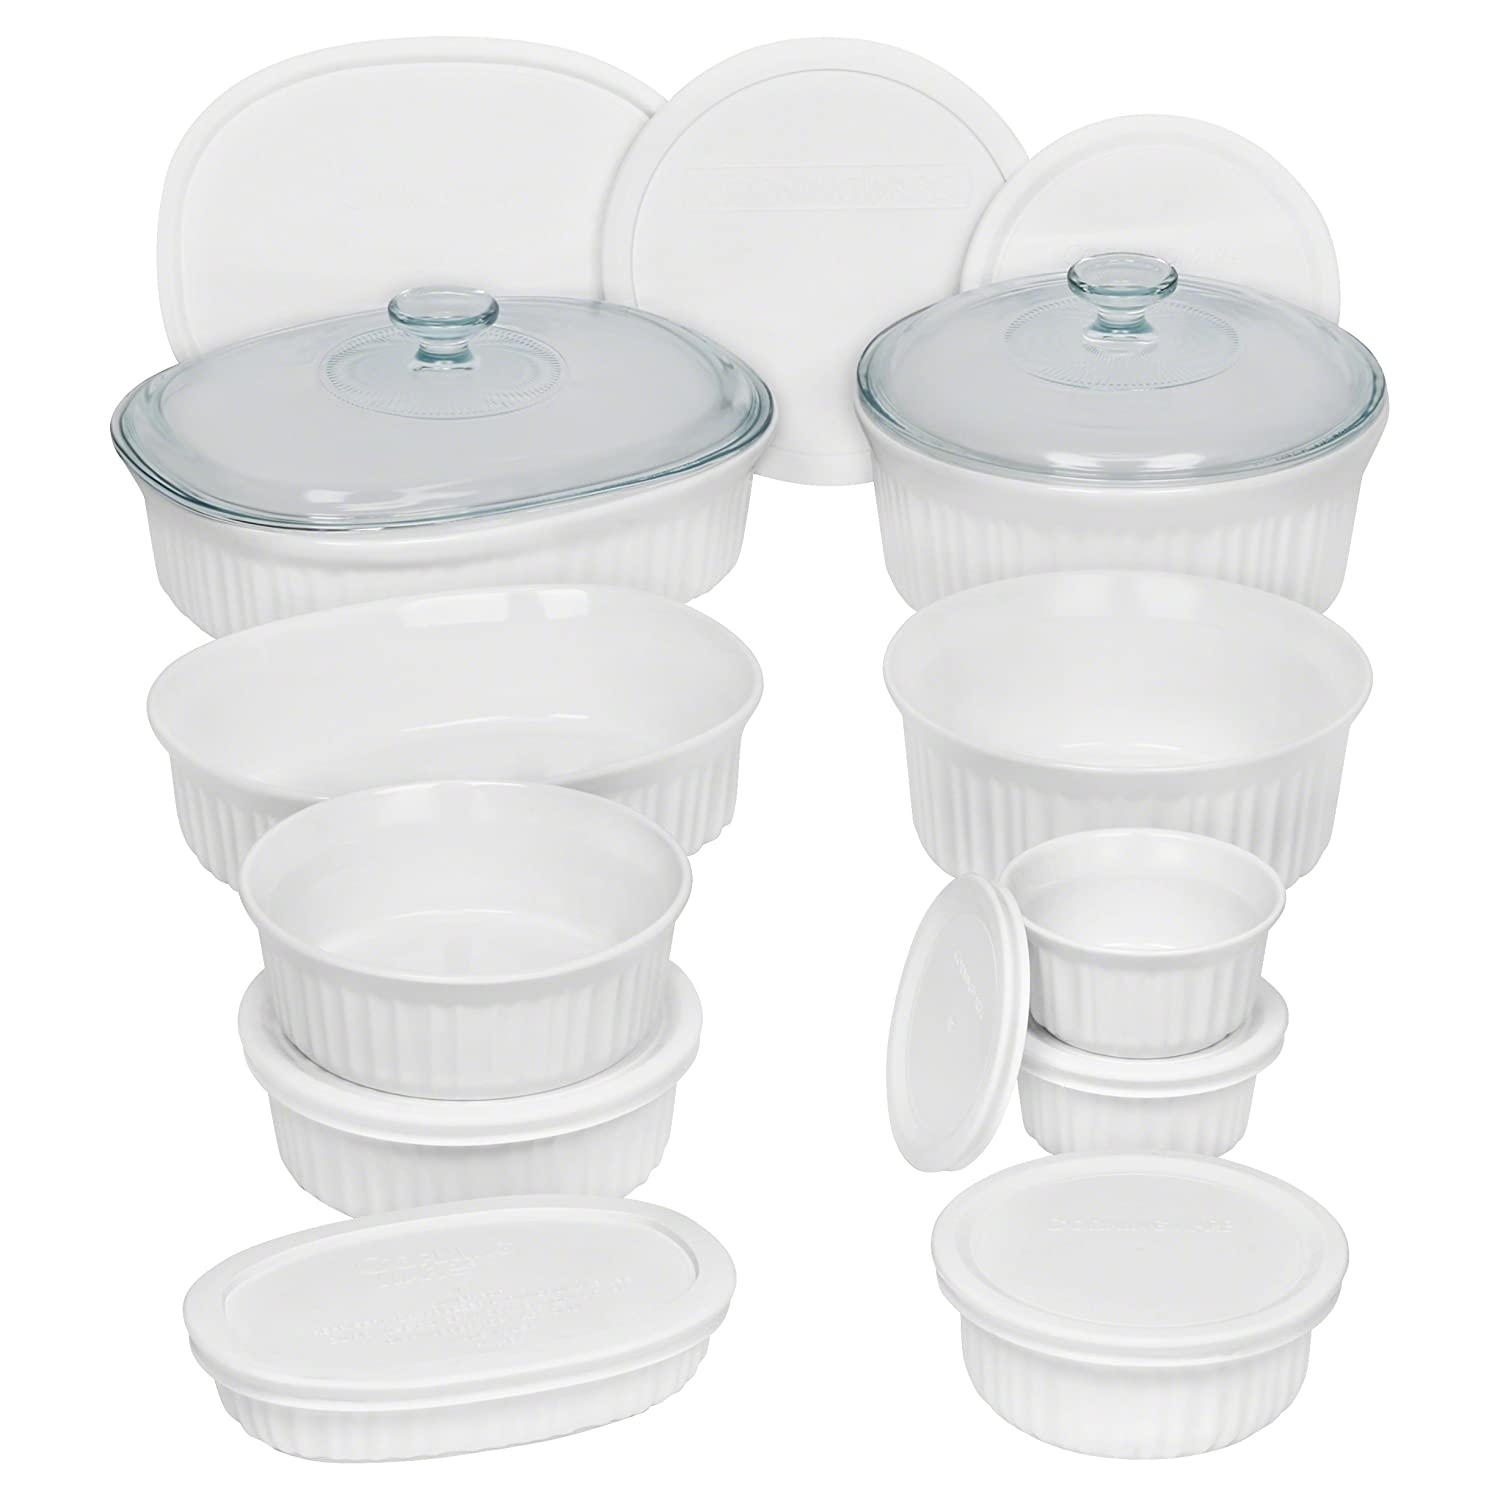 CorningWare 20 Piece French Server Set, White